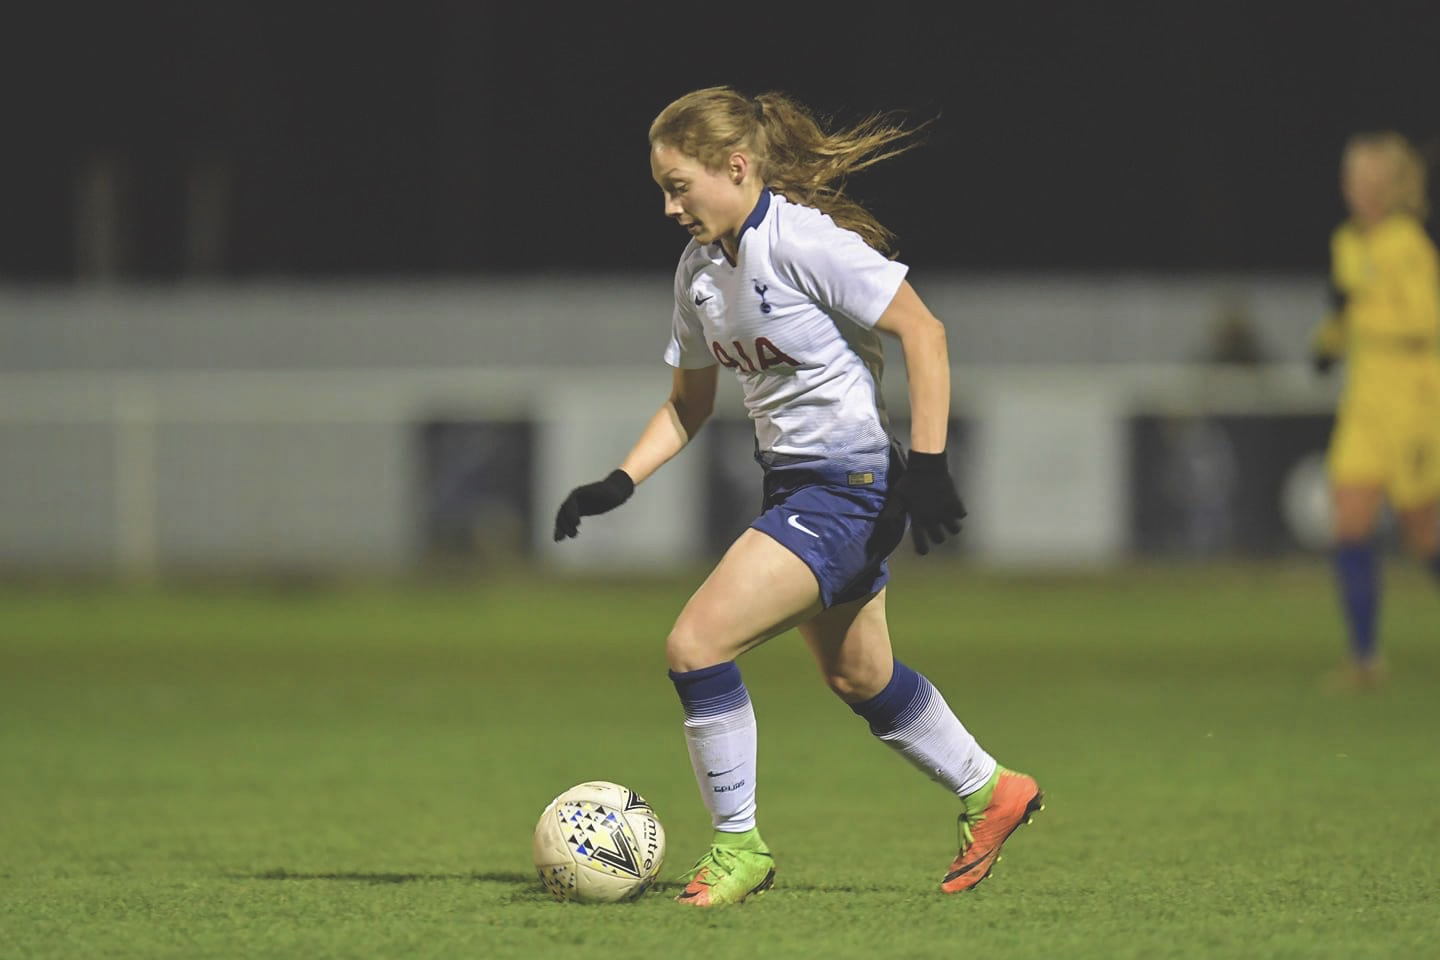 Angela Addison in action for Spurs. Photo from @THLFCofficial